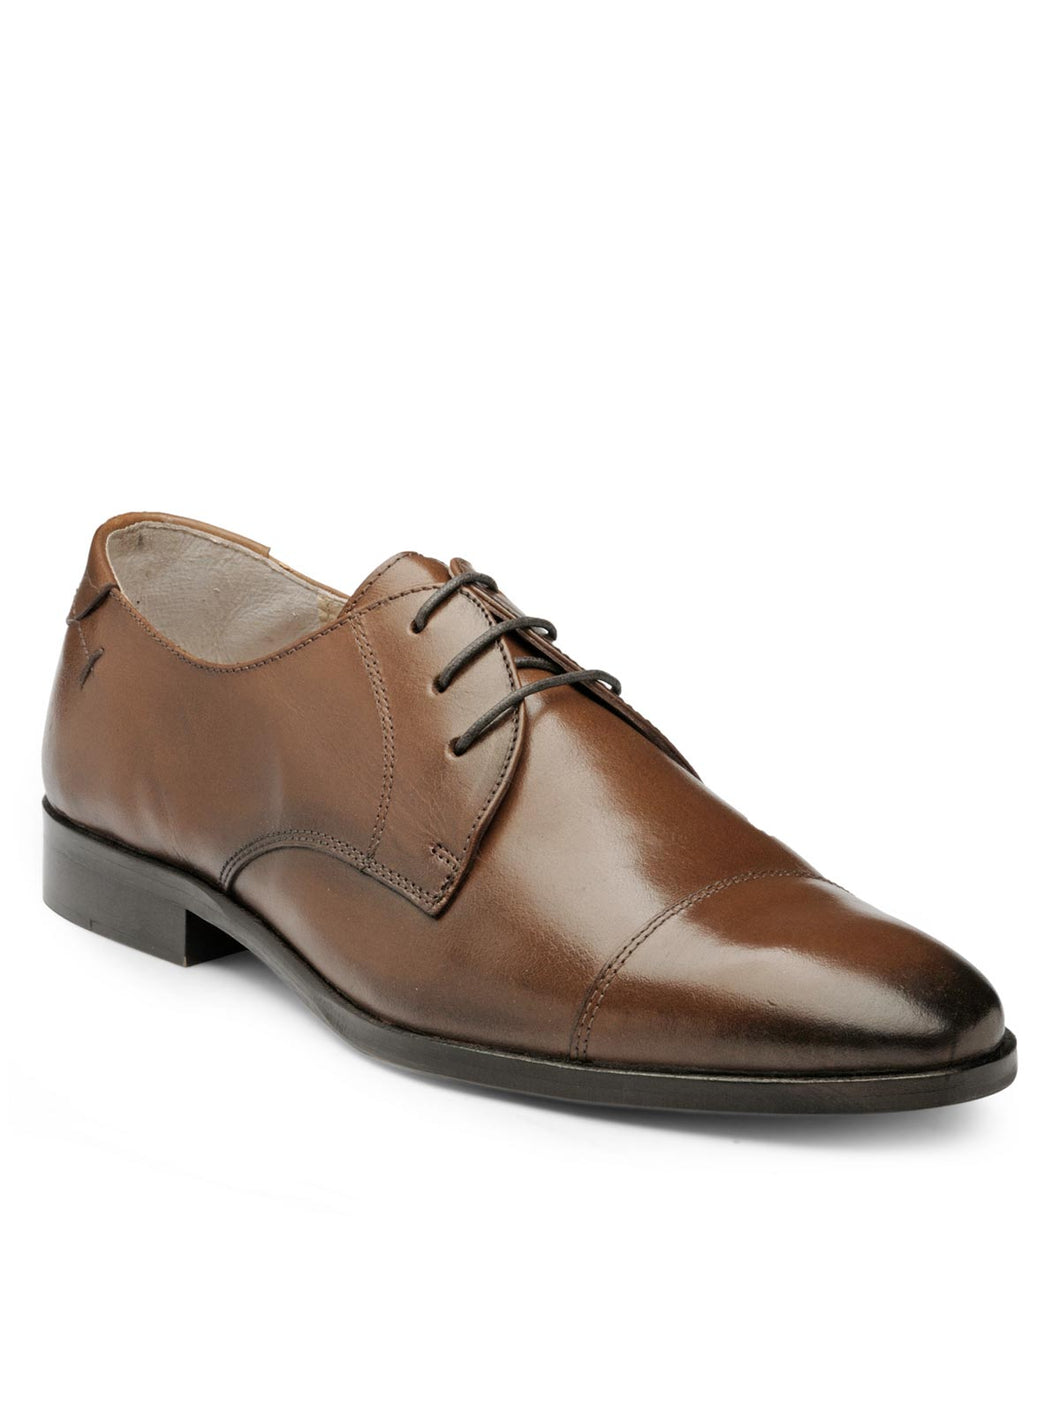 Teakwood Genuine Leather Derby Shoes Shoes